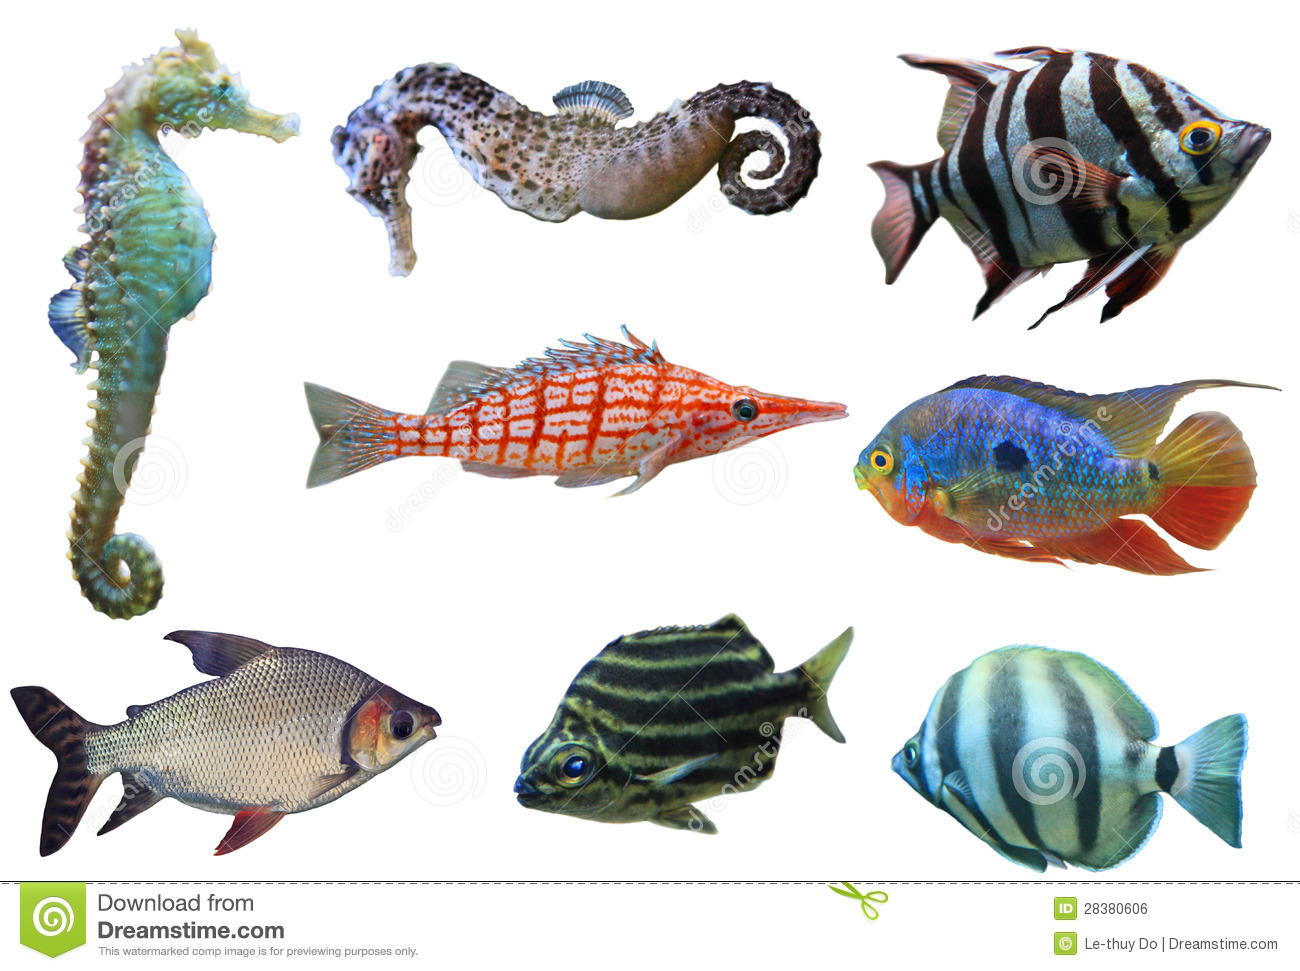 Aquarium Fish Royalty Free Stock Image - Image: 28380606